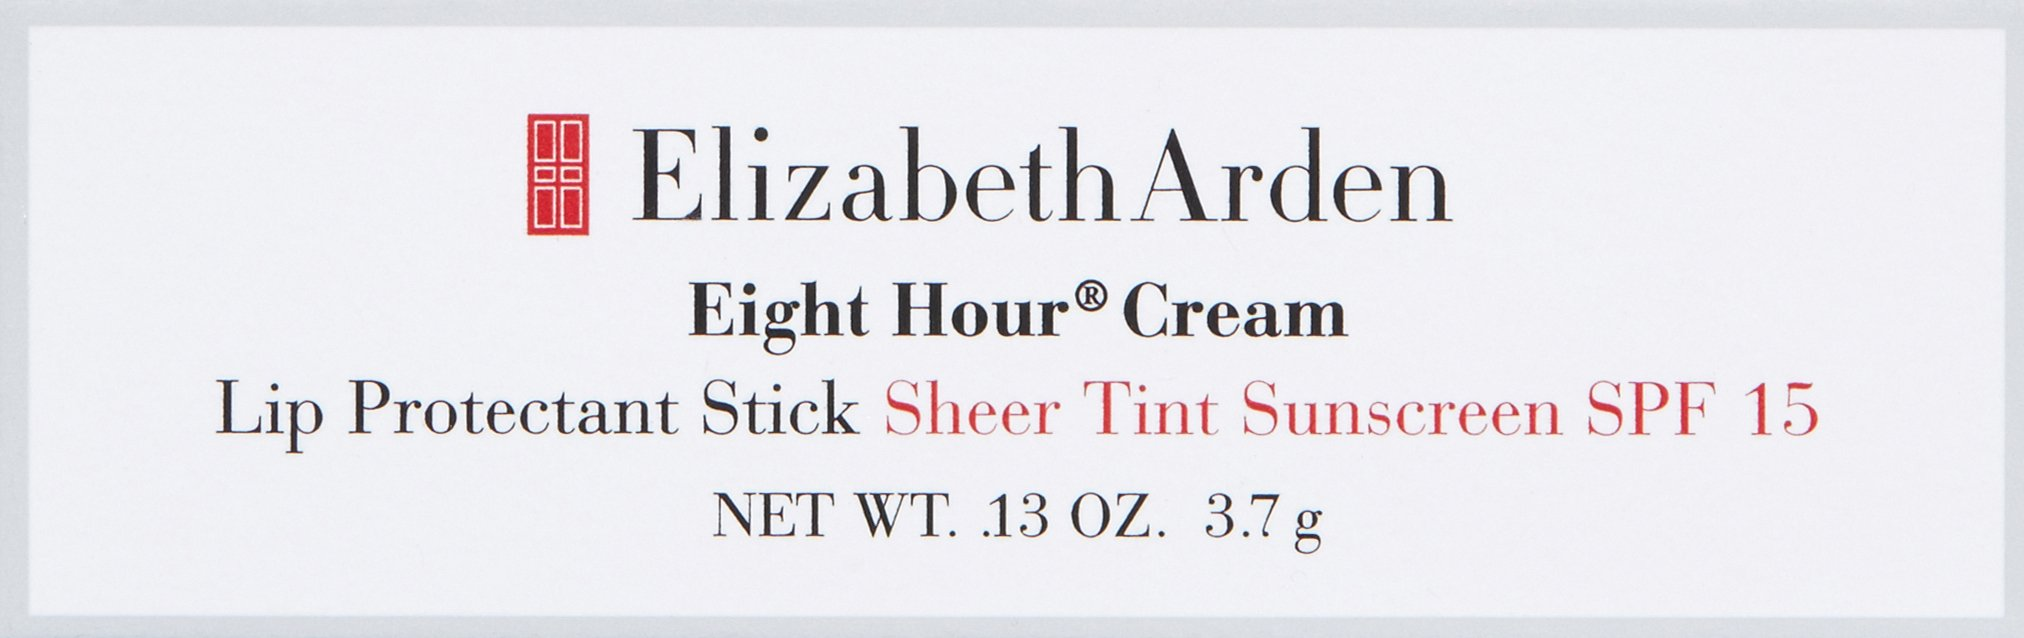 Elizabeth Arden Eight Hour Cream Lip Protectant Stick SPF 15, Honey, 3.7g by Elizabeth Arden (Image #4)